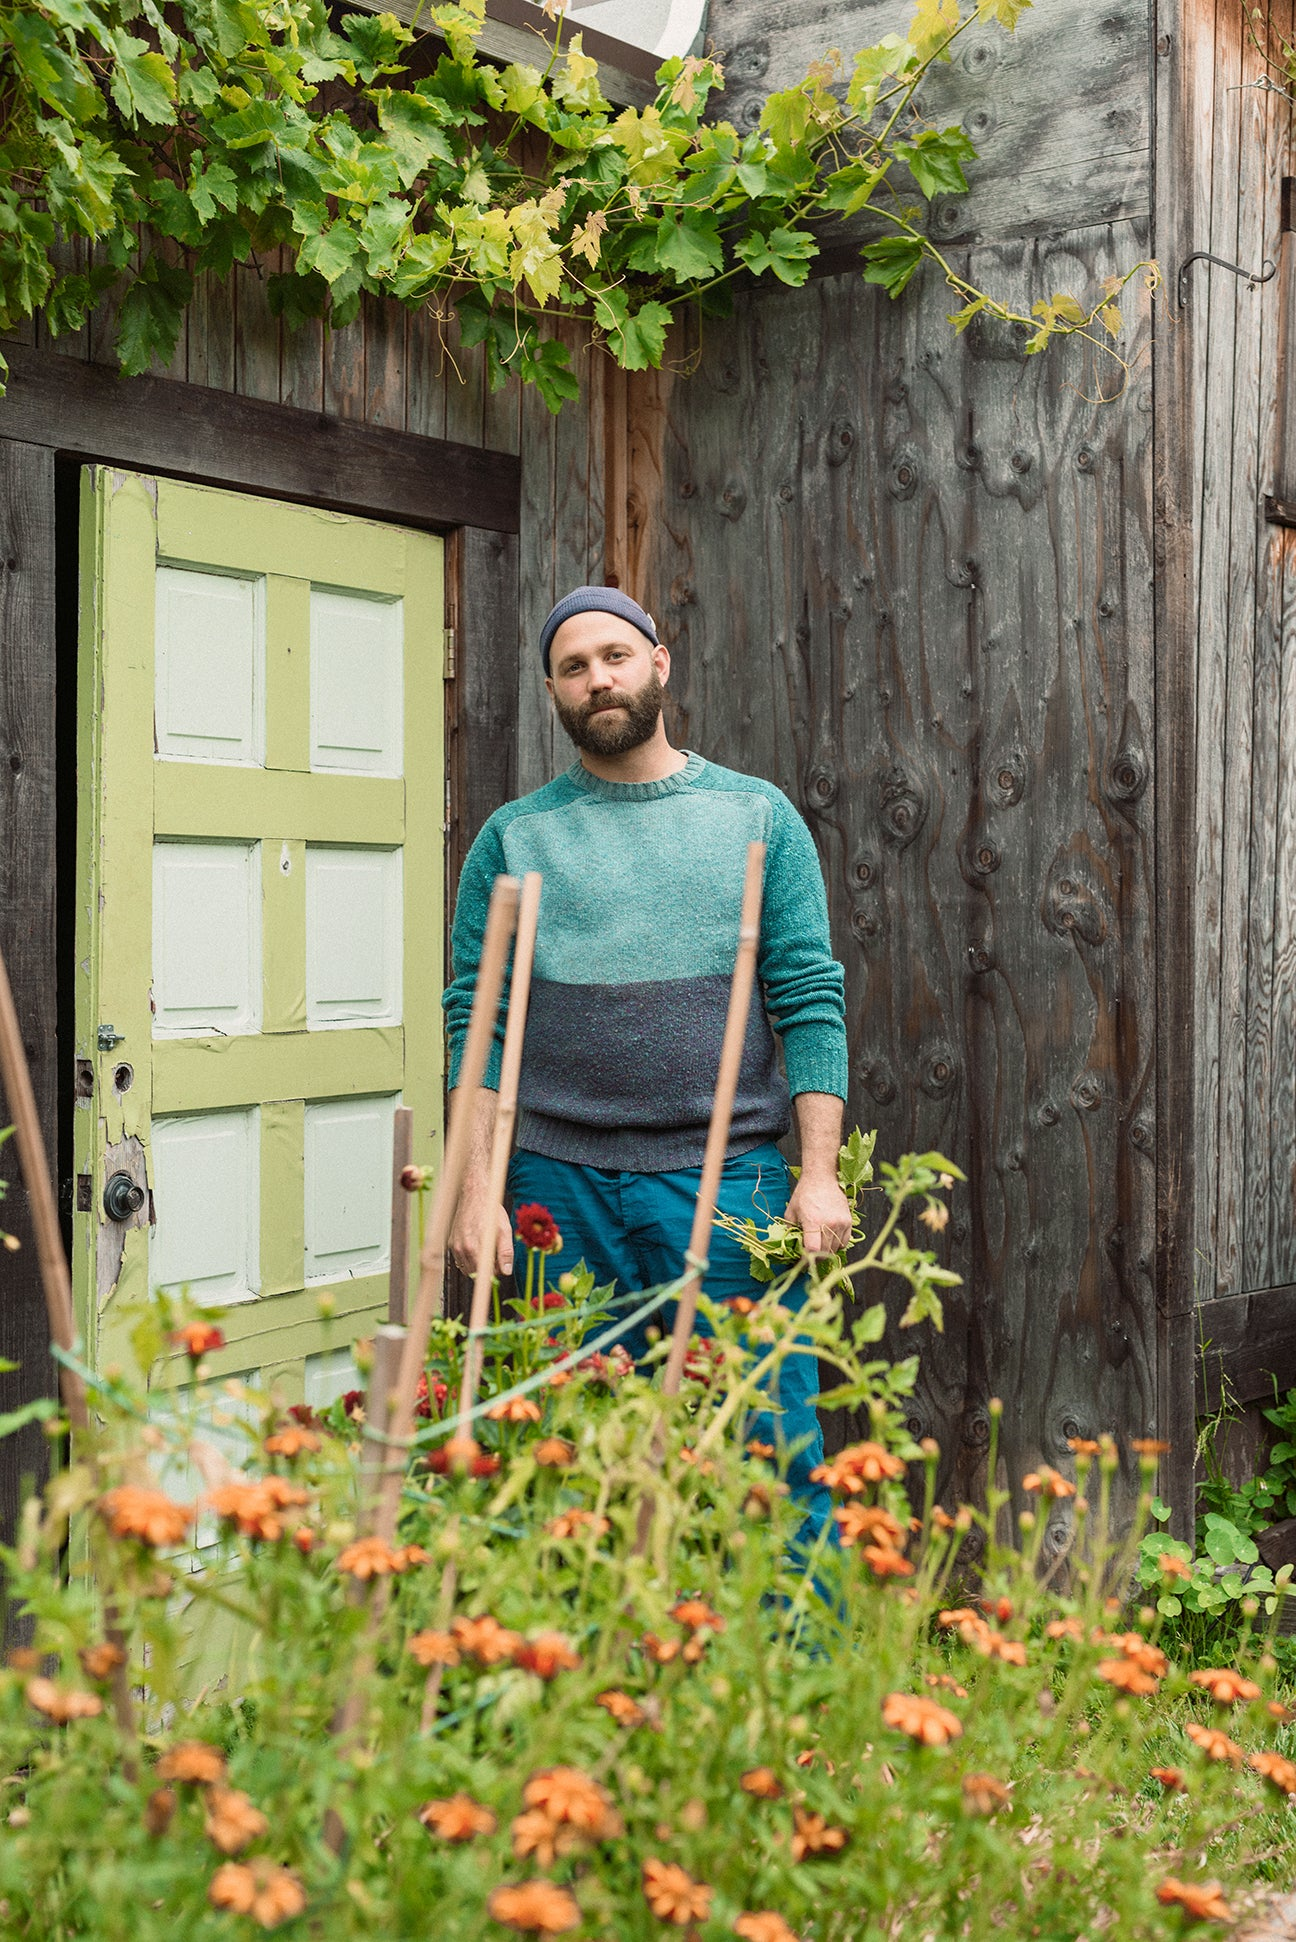 man standing in front of weathered home exterior with plants